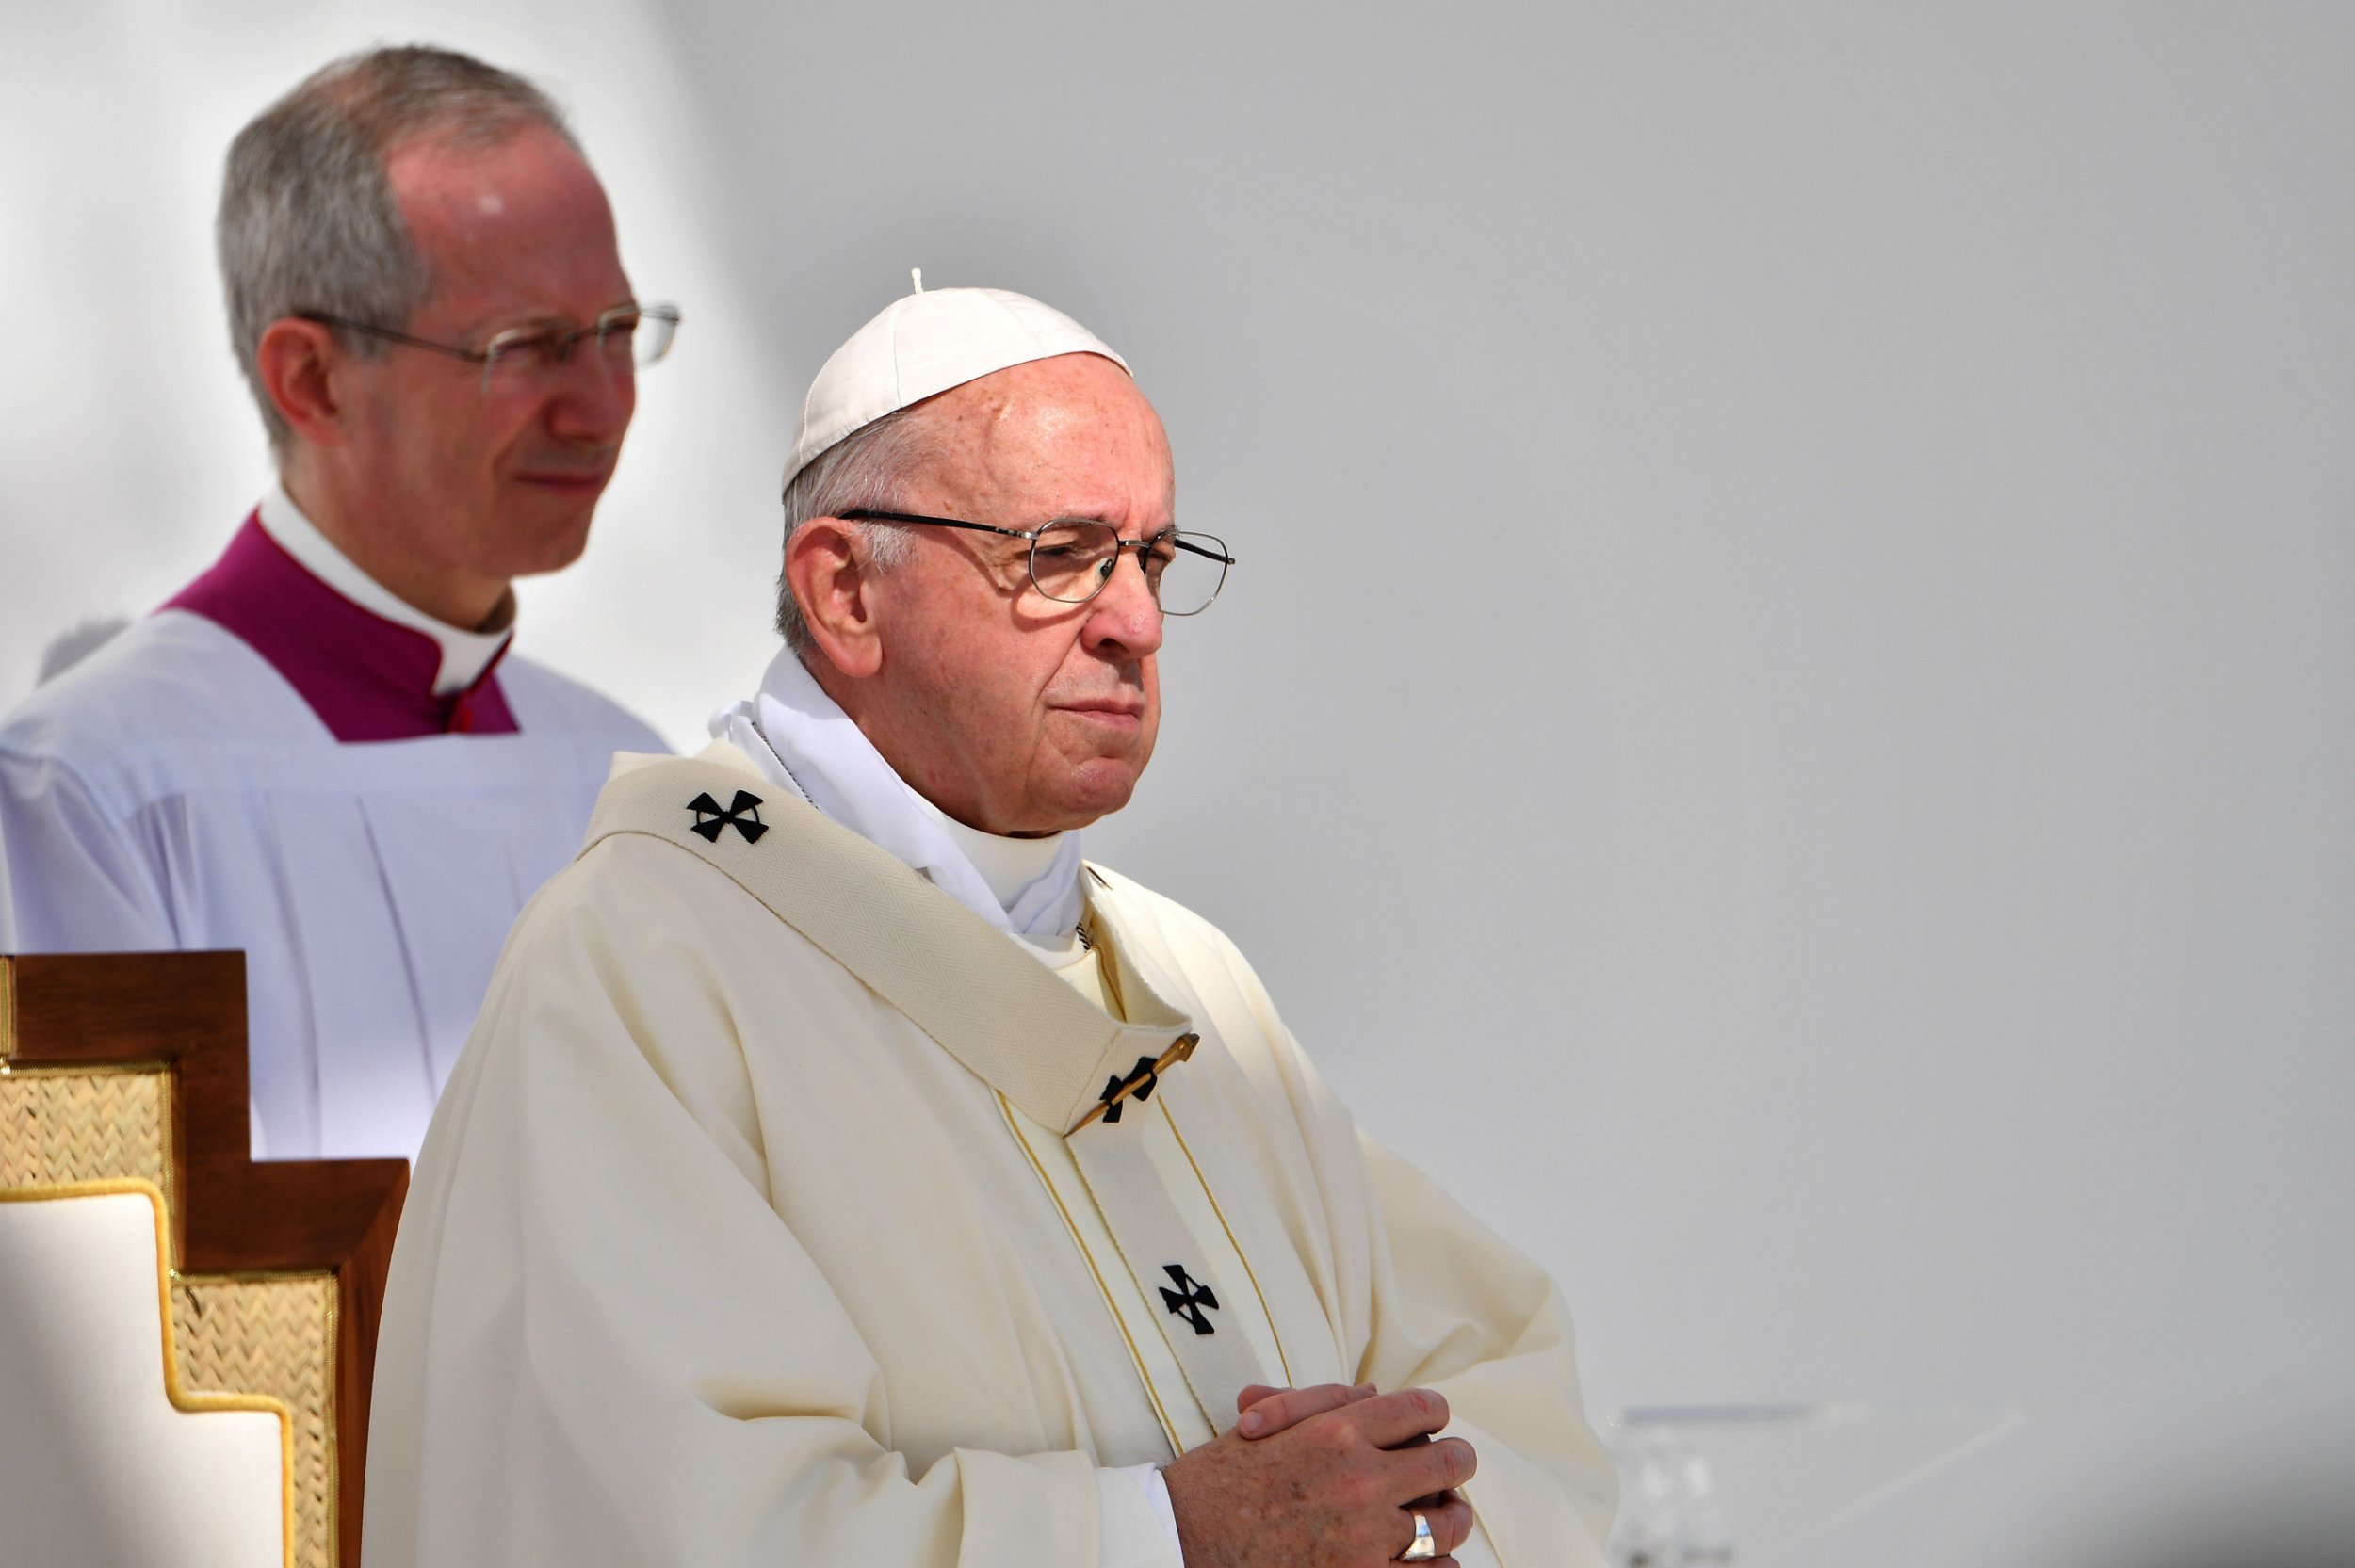 Pope Francis leads mass for an estimated 170,000 Catholics at the Zayed Sports City Stadium on February 5, 2019. (Photo by Vincenzo PINTO / AFP)VINCENZO PINTO/AFP/Getty Images